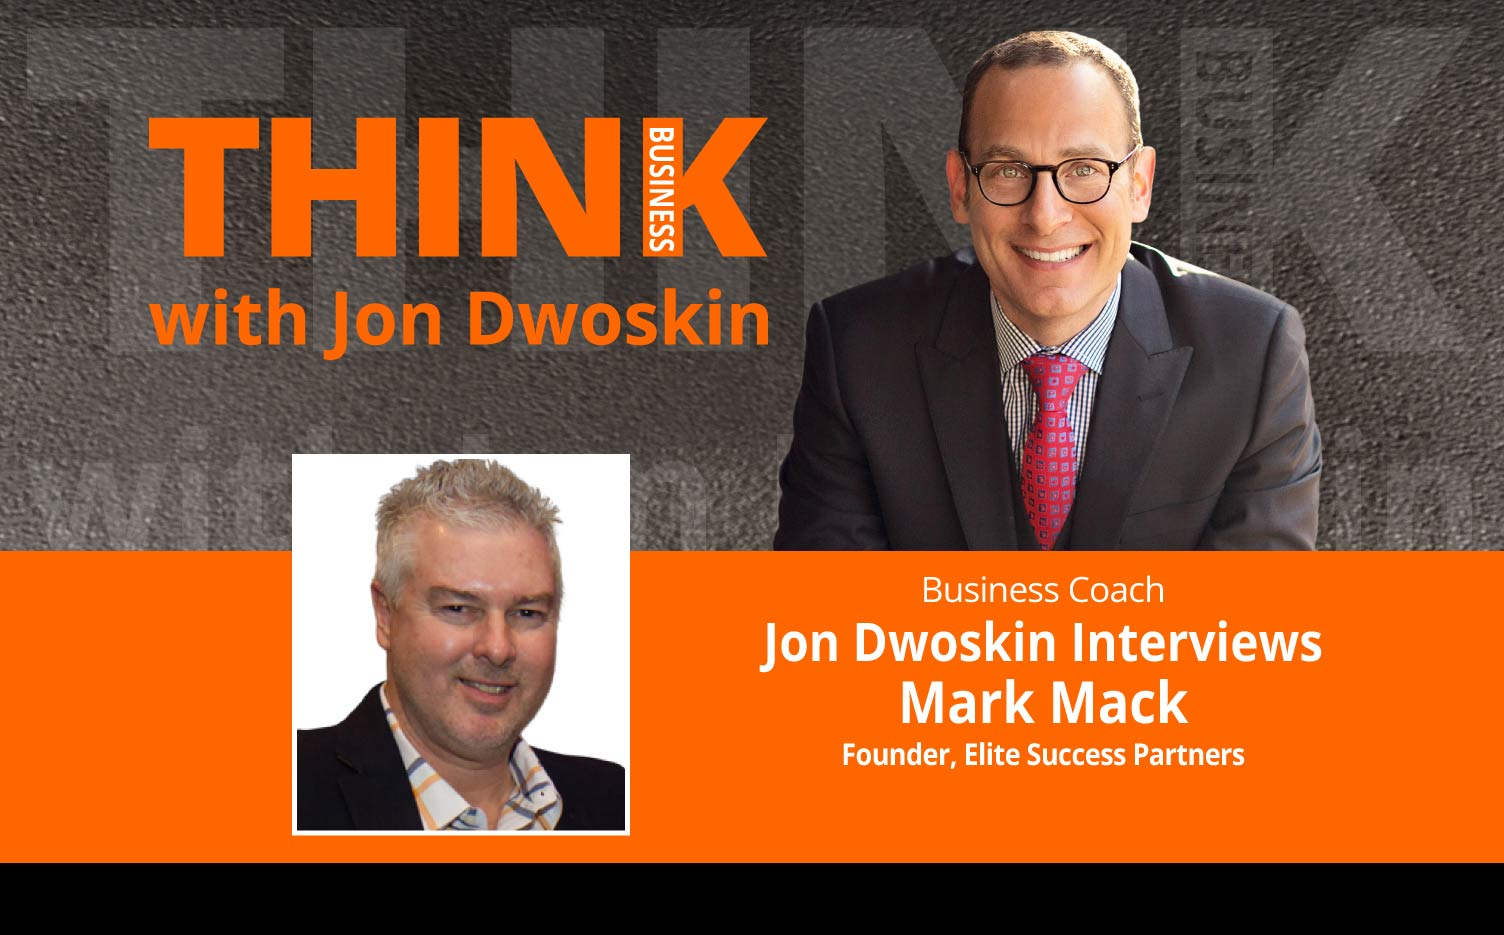 THINK Business Podcast: Jon Dwoskin Interviews Mark Mack, Founder, Elite Success Partners